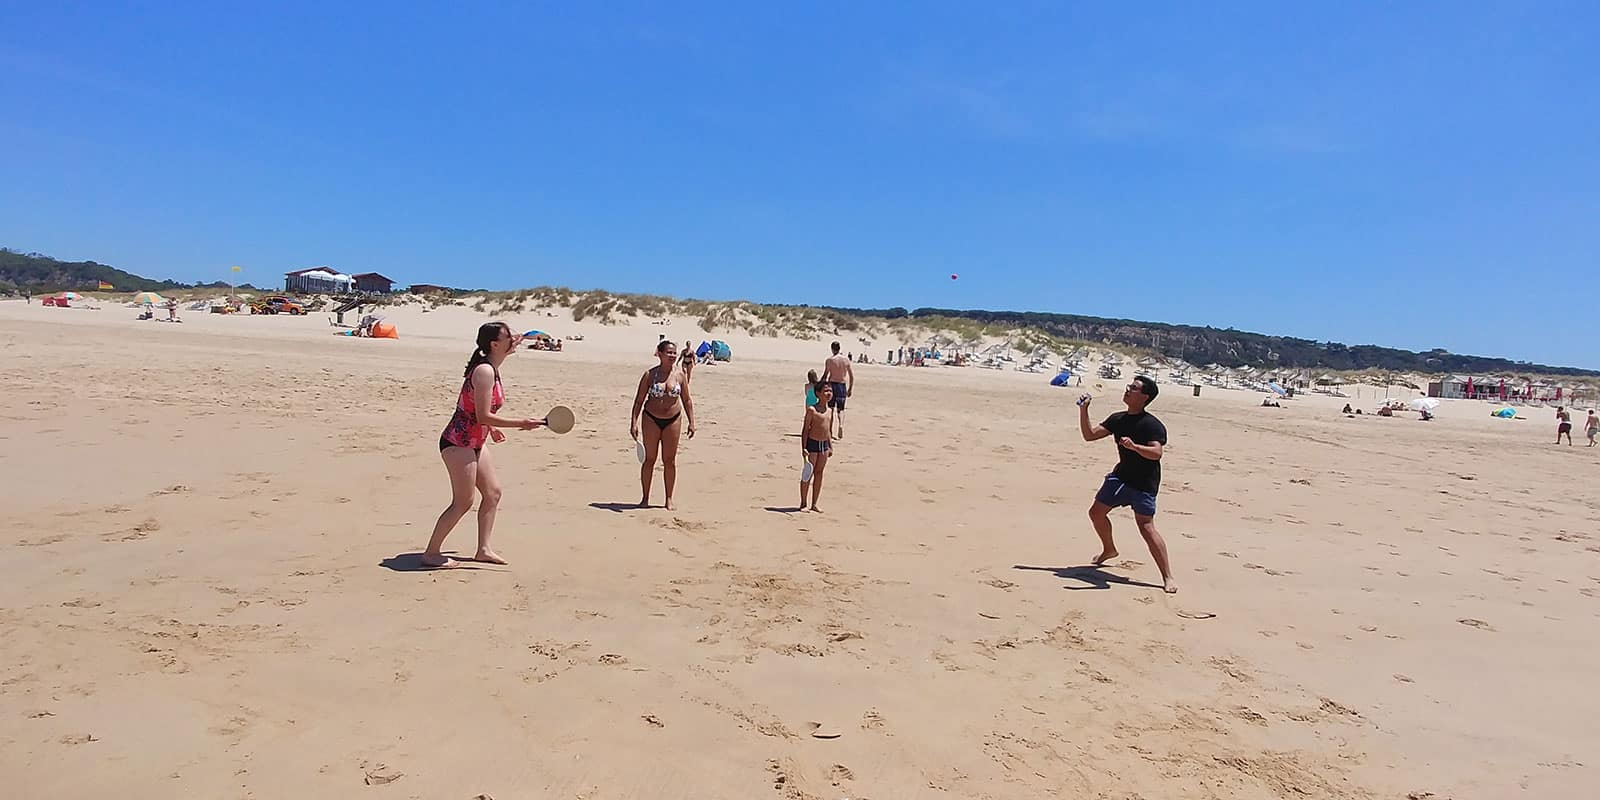 We play a little paddle ball